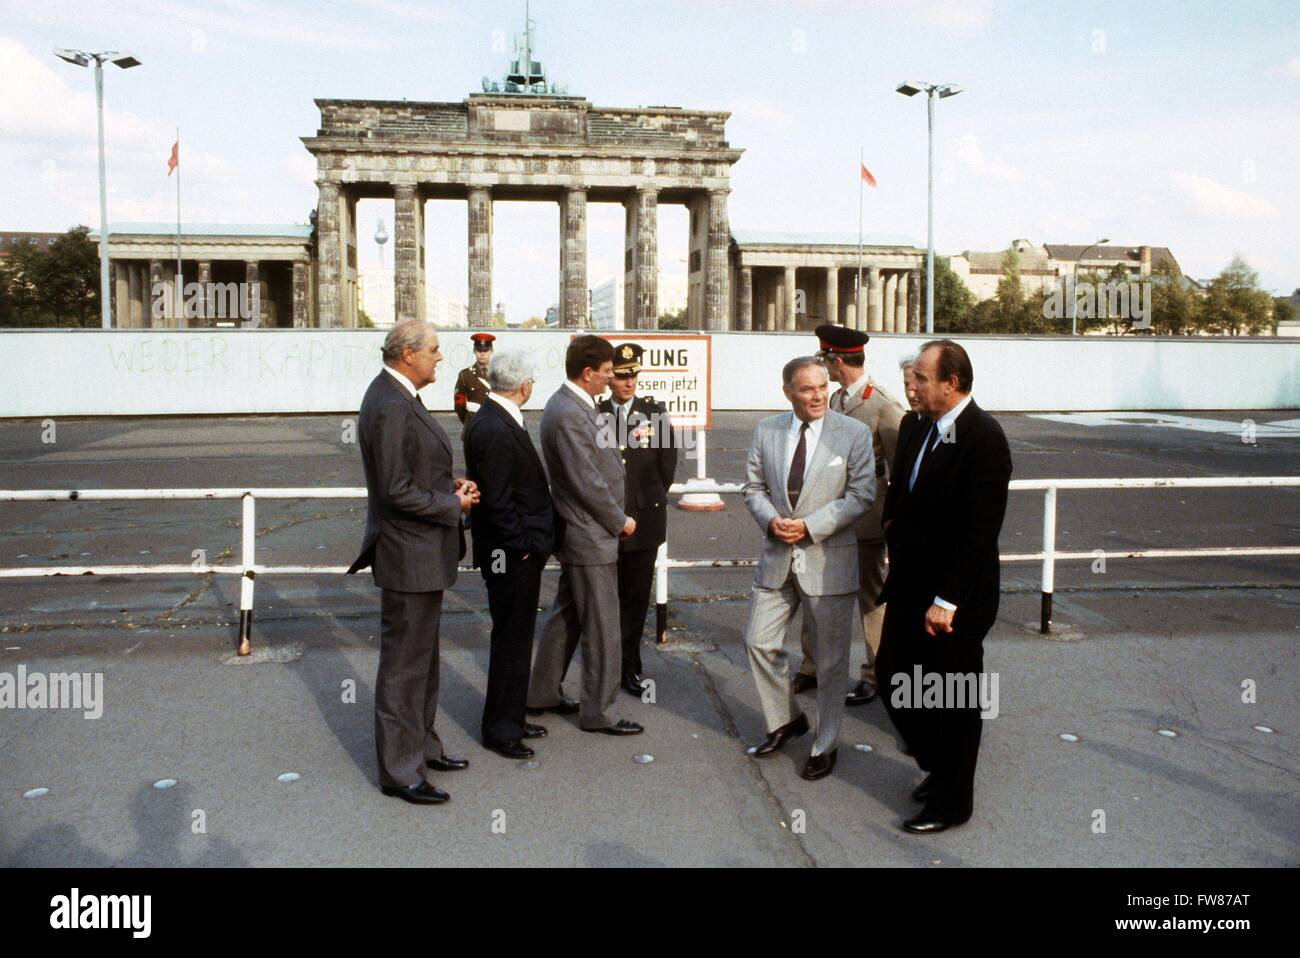 US general and politician Haig (2nd of right) and German foreign minister Hans-Dietrich Genscher (r) visit Brandenburg Gate on 13 September 1981. Stock Photo